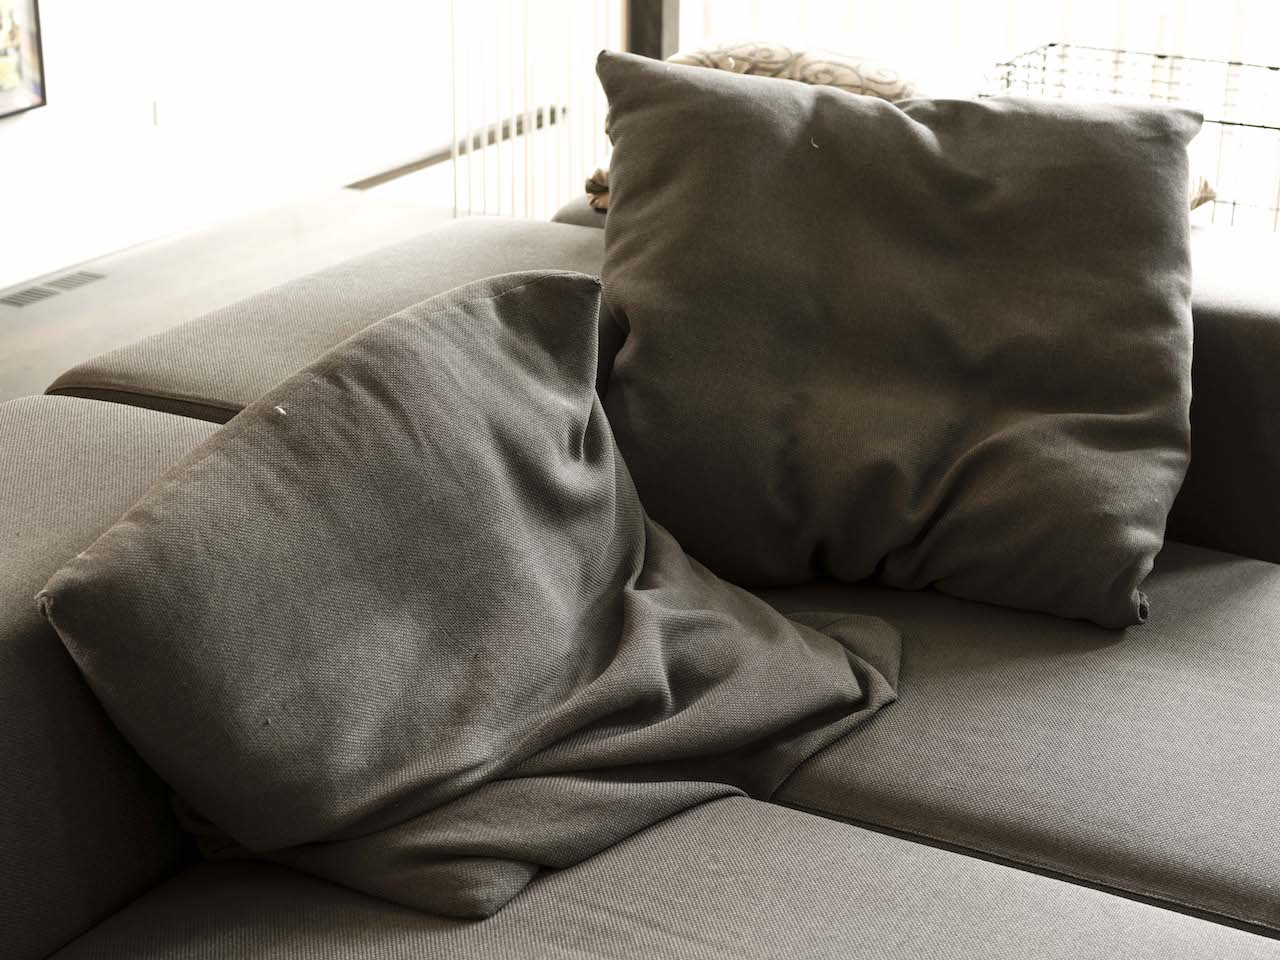 gray pillows slumped into the corner of a gray couch